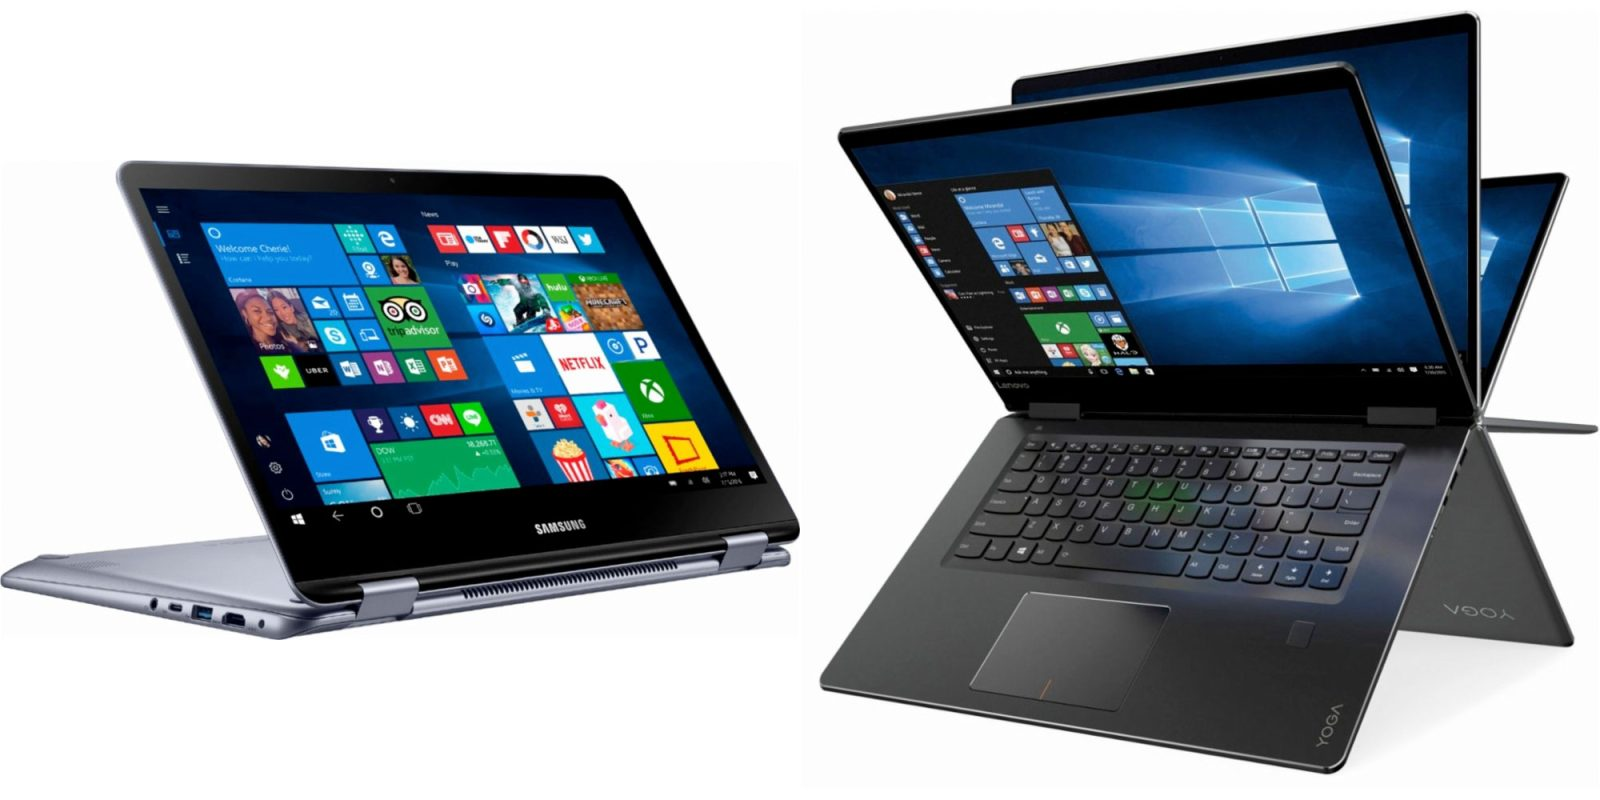 best buy black friday in july laptop sales dell inspiron lenovo yoga more from 125 - After Christmas Sales Best Buy